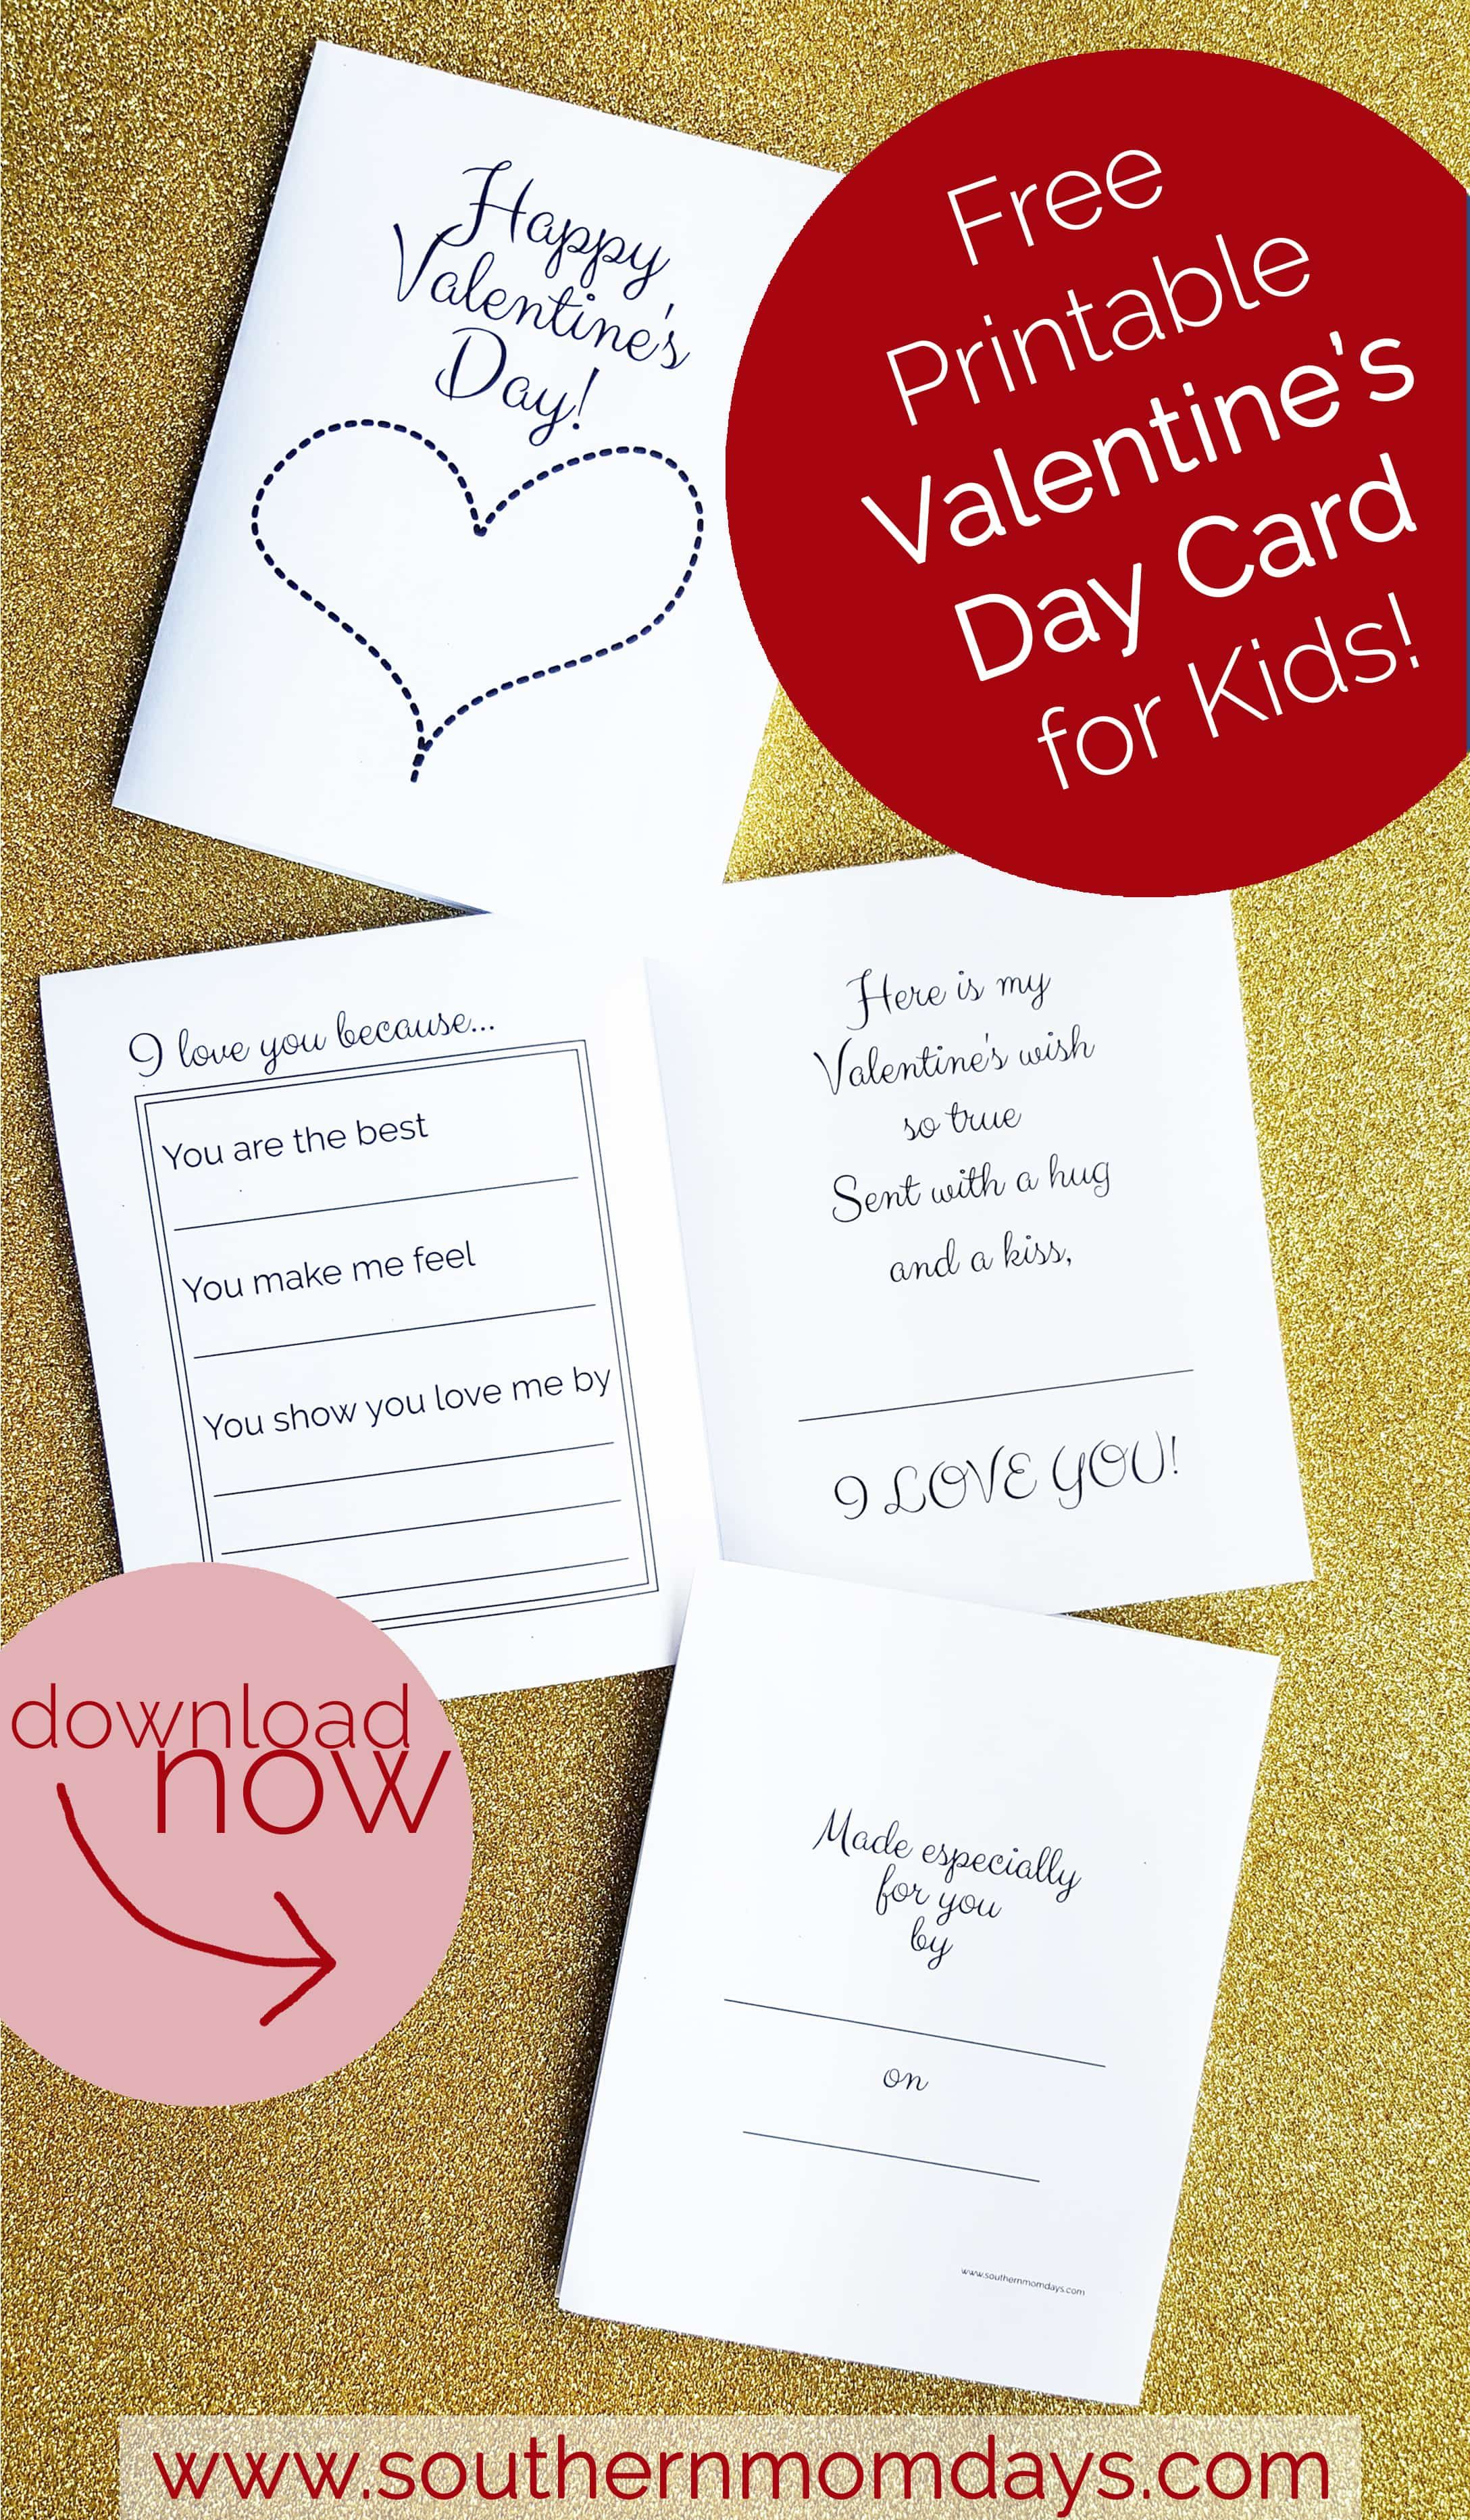 Free Printable: Valentine's Day Card For Kids | Valentine's Day - Free Printable Valentines Day Cards For Mom And Dad